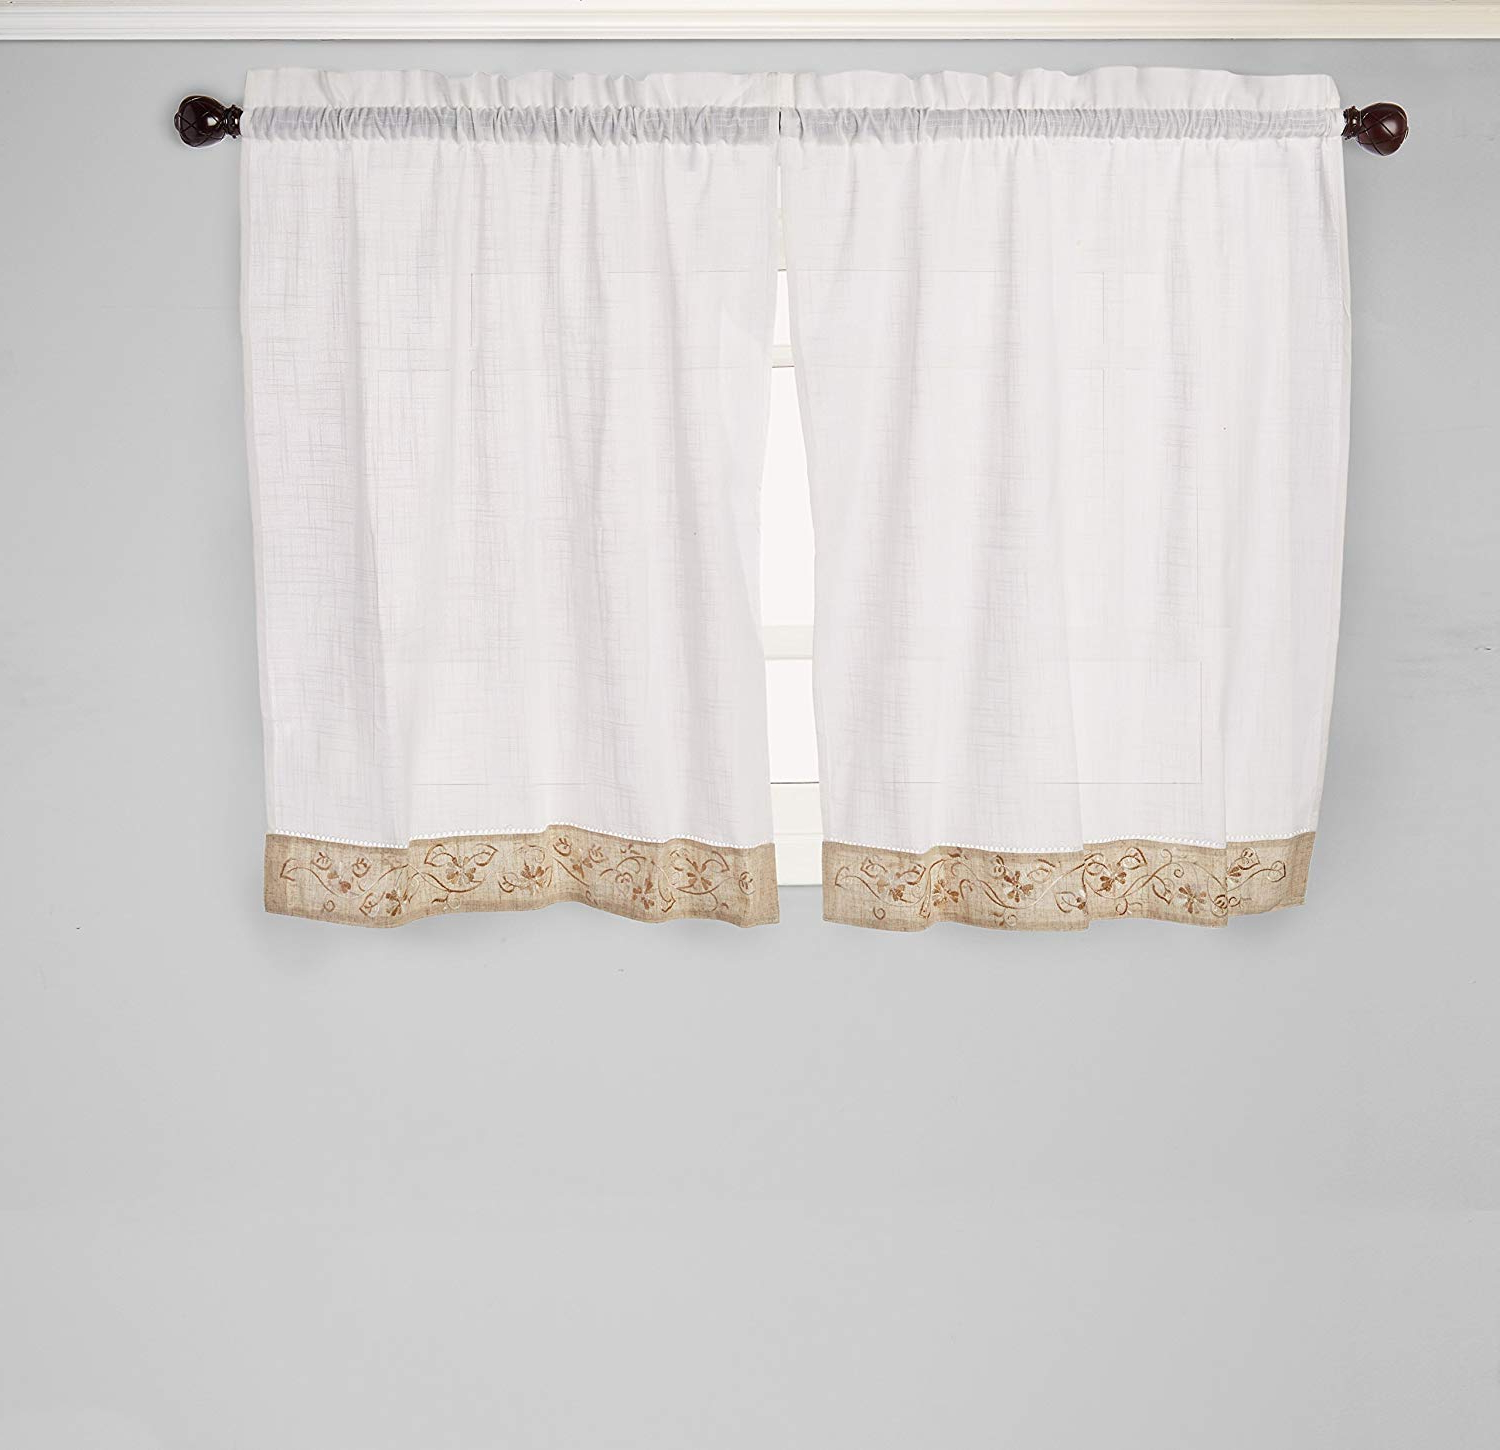 """Best And Newest Oakwood Linen Style Decorative Window Curtain Tier Sets Intended For Achim Home Furnishings Oakwood Tier Pair, 58 36 Inch, Natural, 58"""" X 36"""" (View 10 of 20)"""